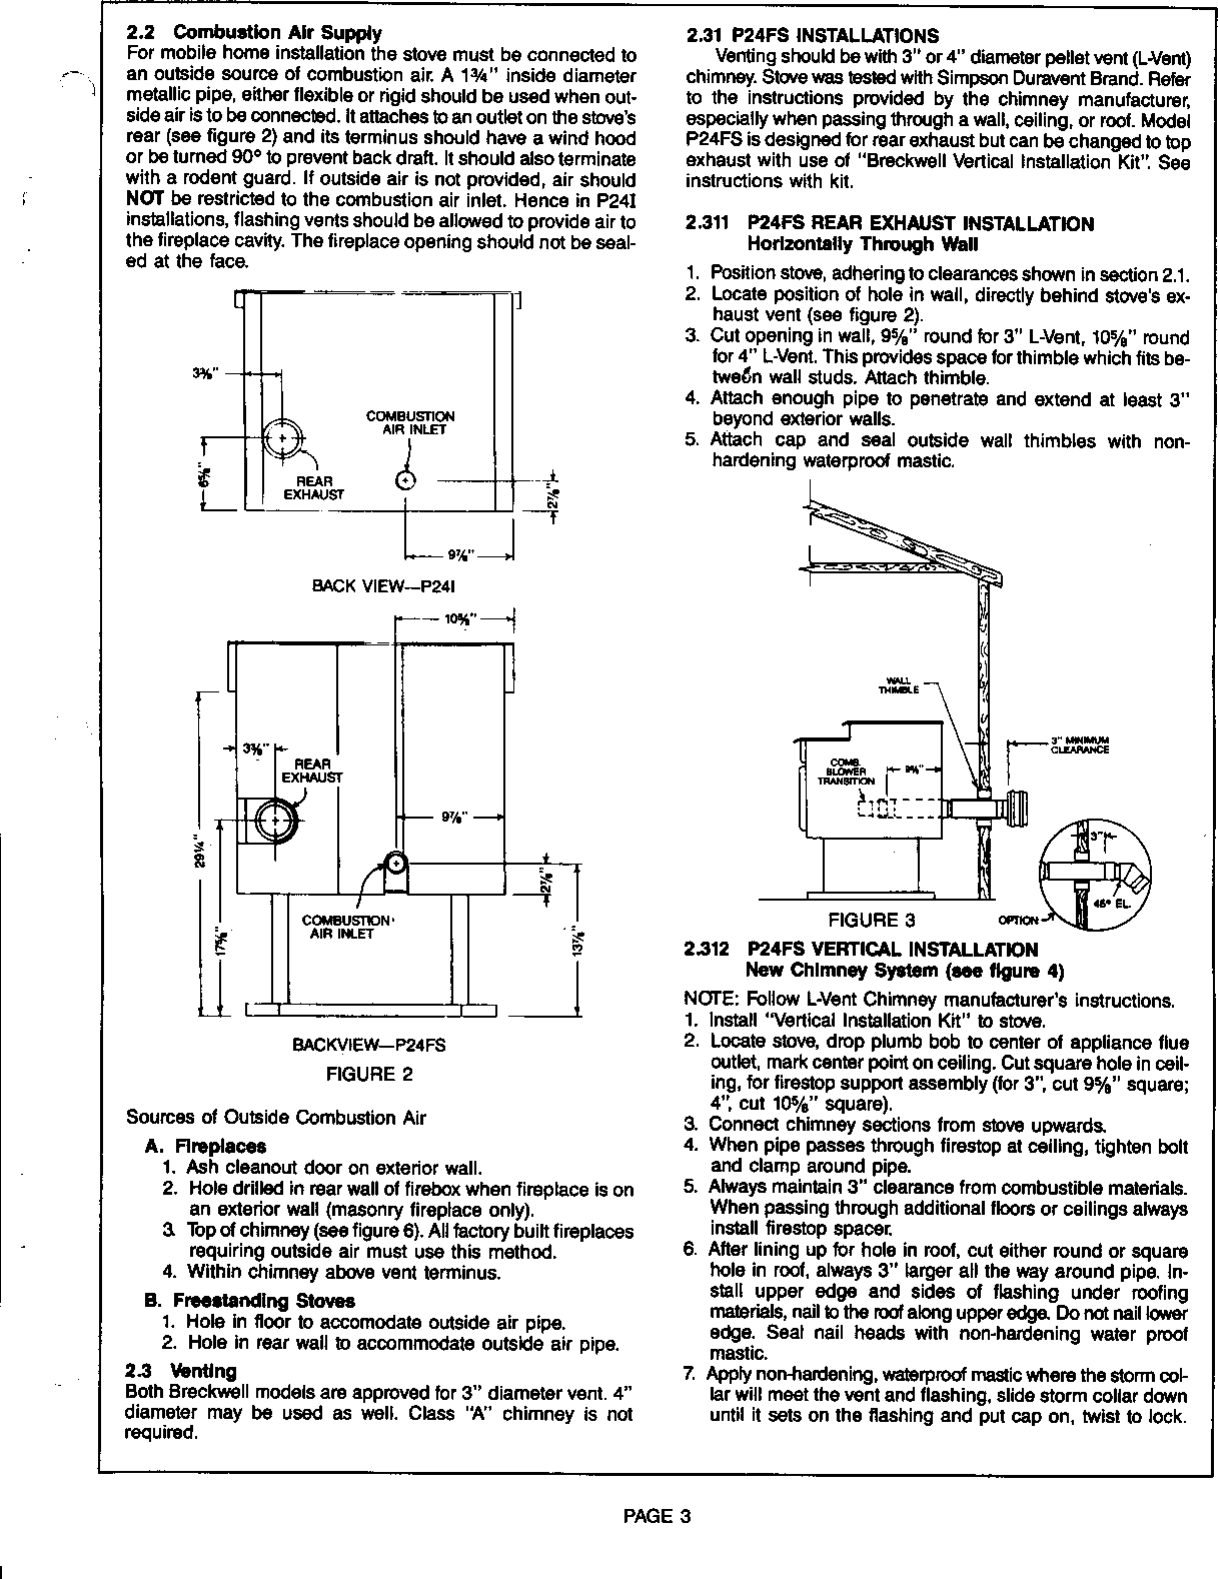 Wiring Diagram Green Mountain Grill 194 Pellet Hopper Duravent Chimney Installation Instructions Diagrams